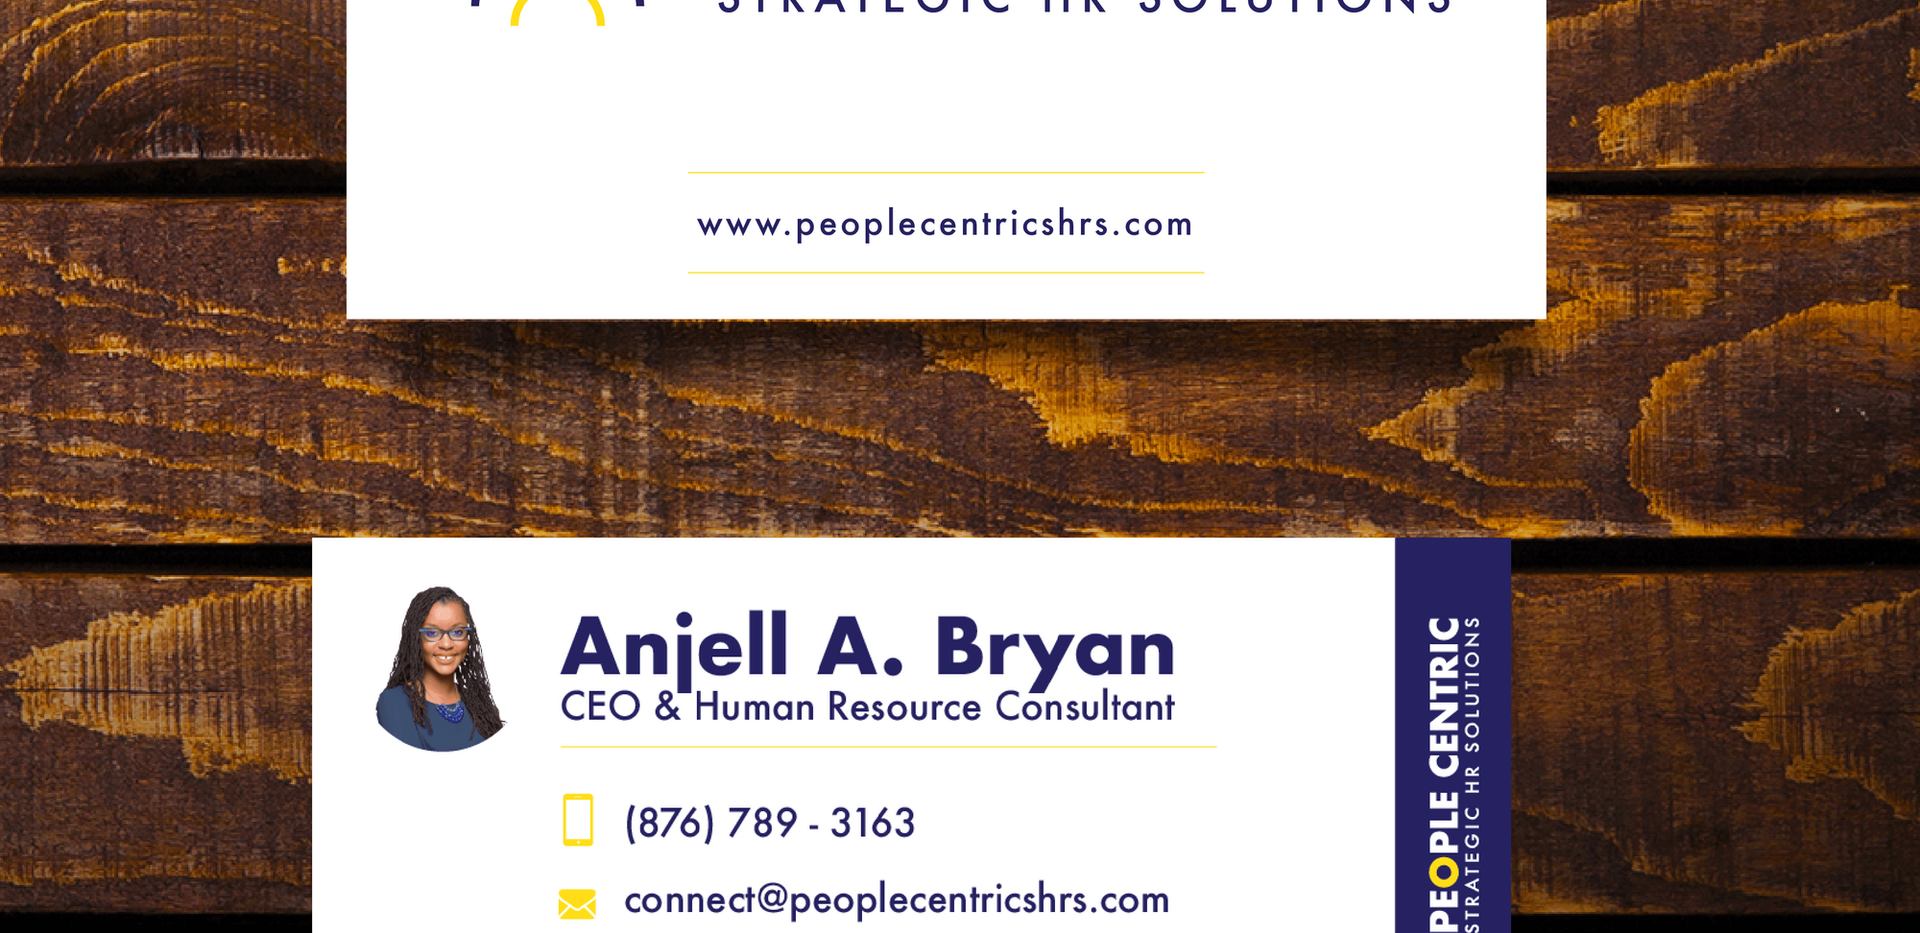 People Centric SHRS